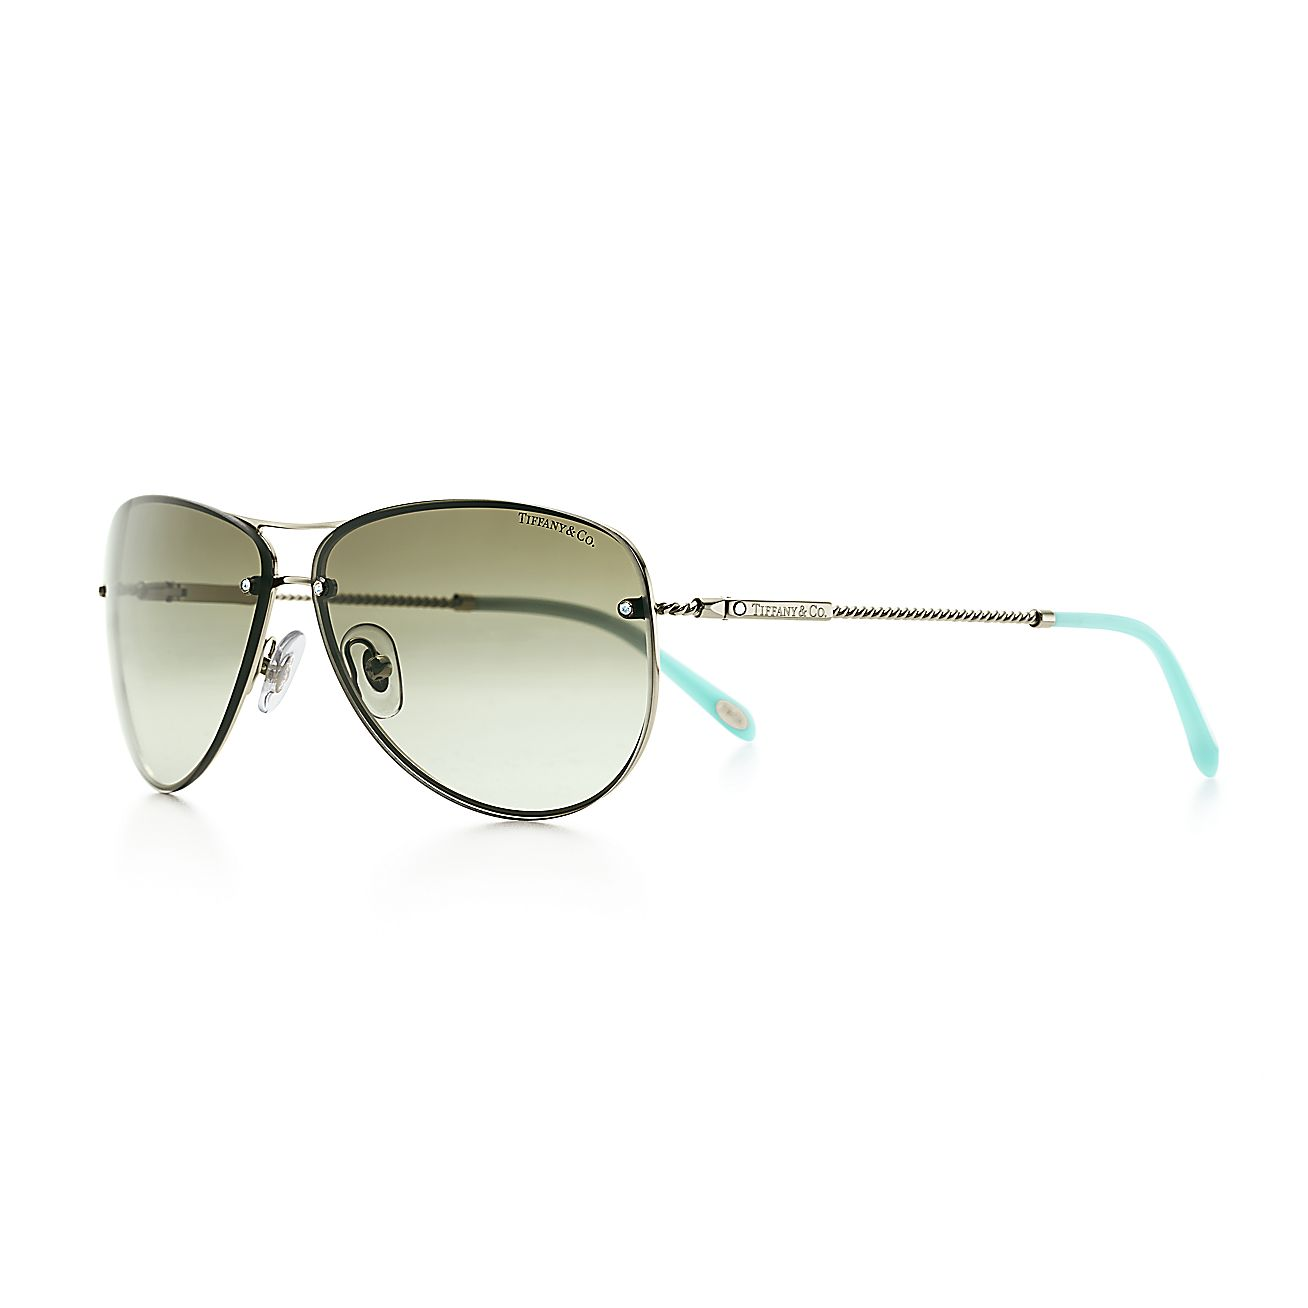 949a9704f7ca Tiffany Twist Aviator Sunglasses In Tiffany Blue « Heritage Malta